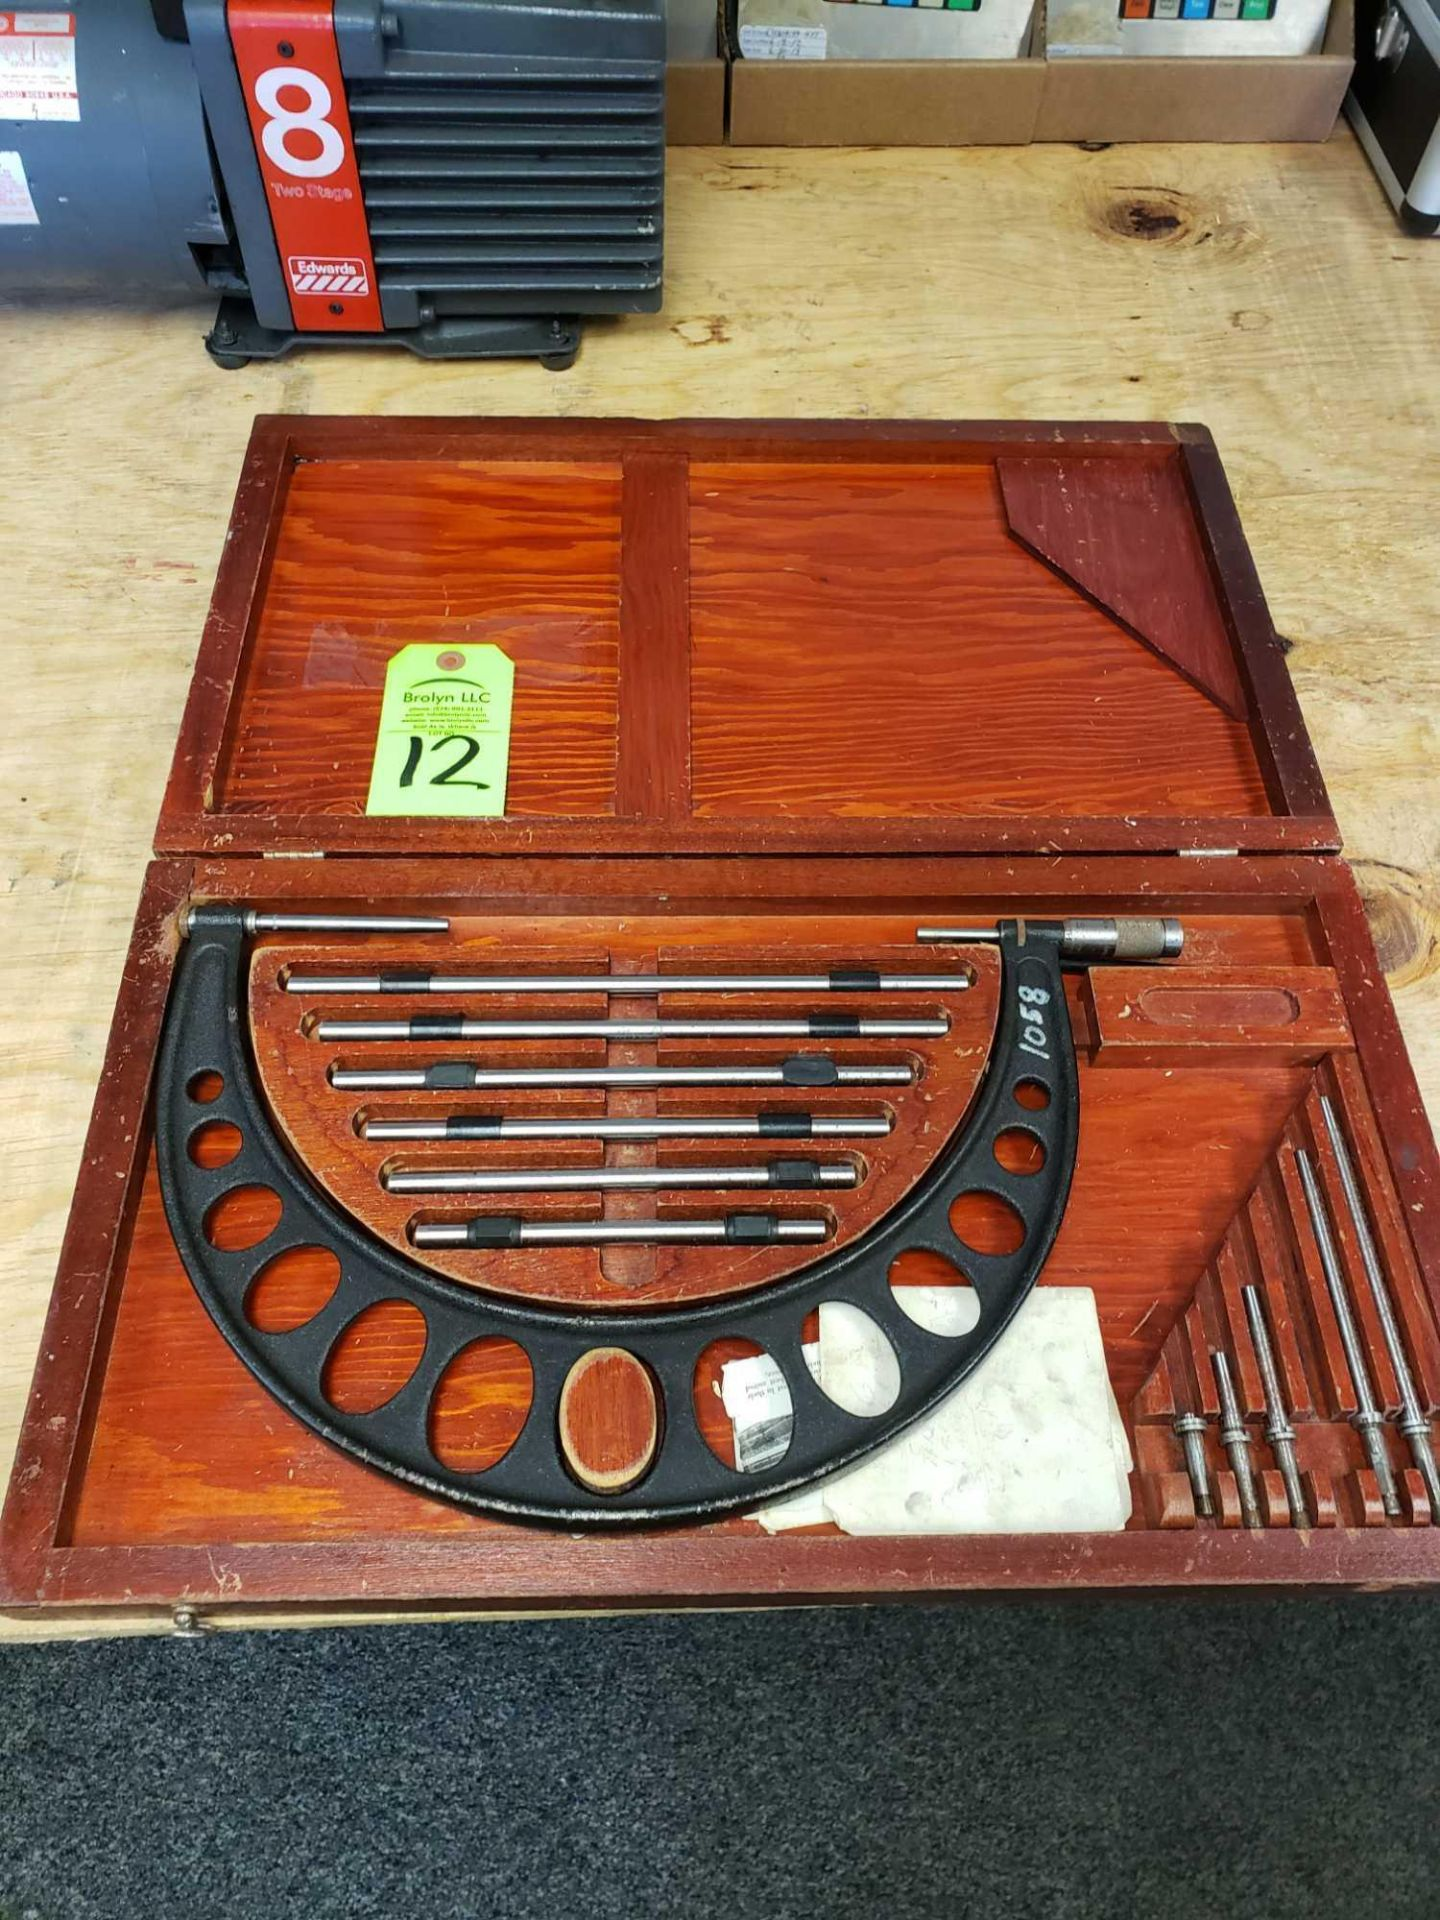 Lot 12 - Brown and Sharpe Micrometer set with standards